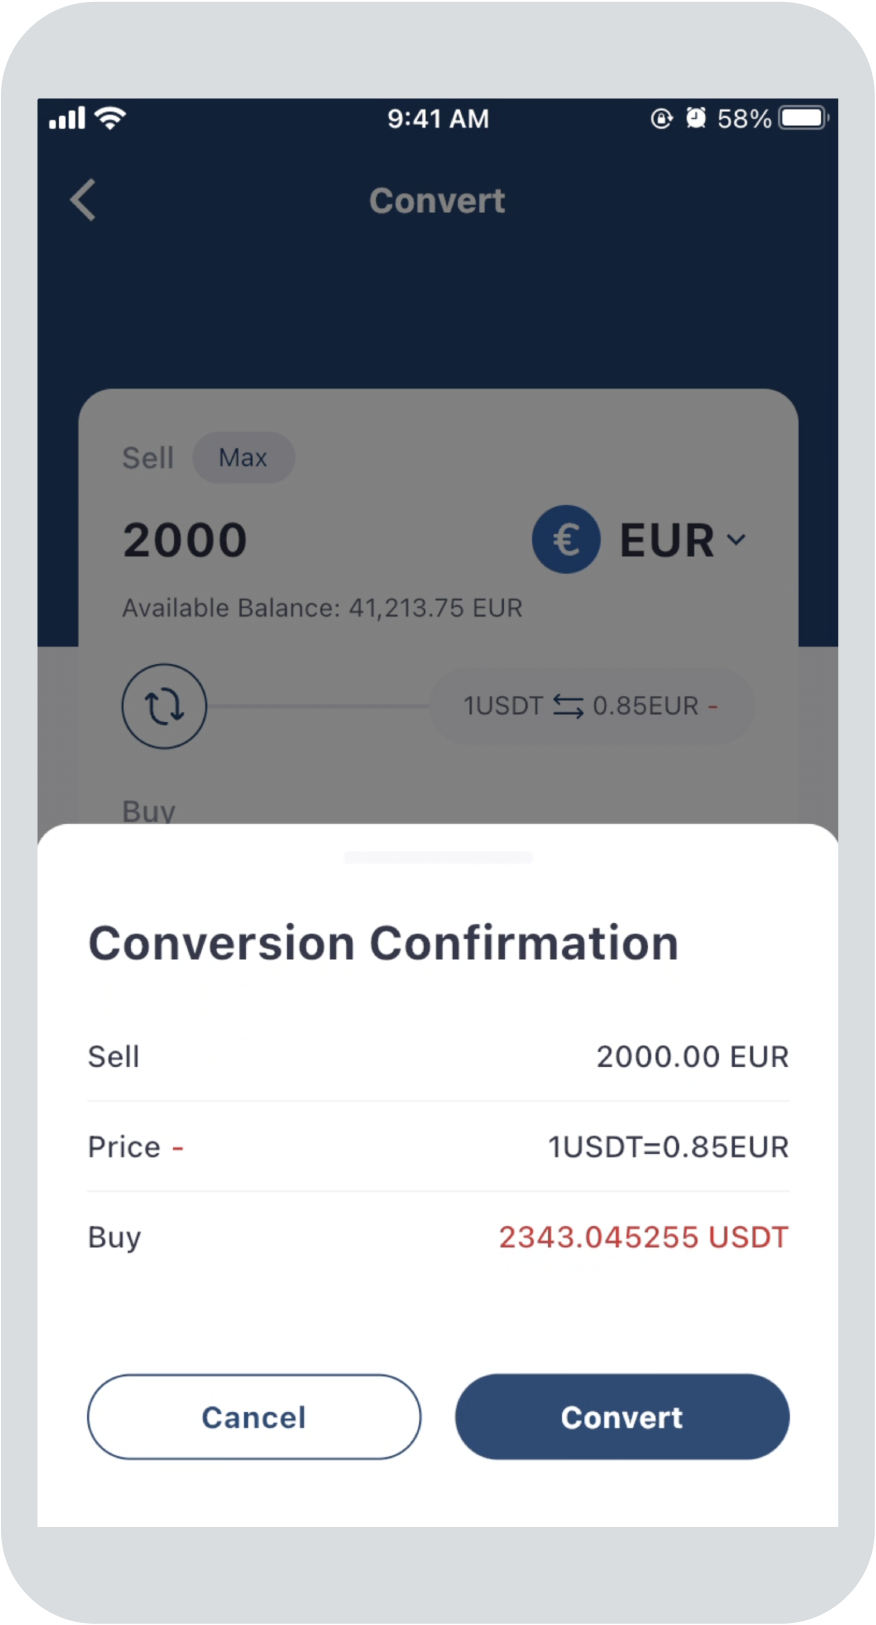 Step 2: Confirm currency conversion